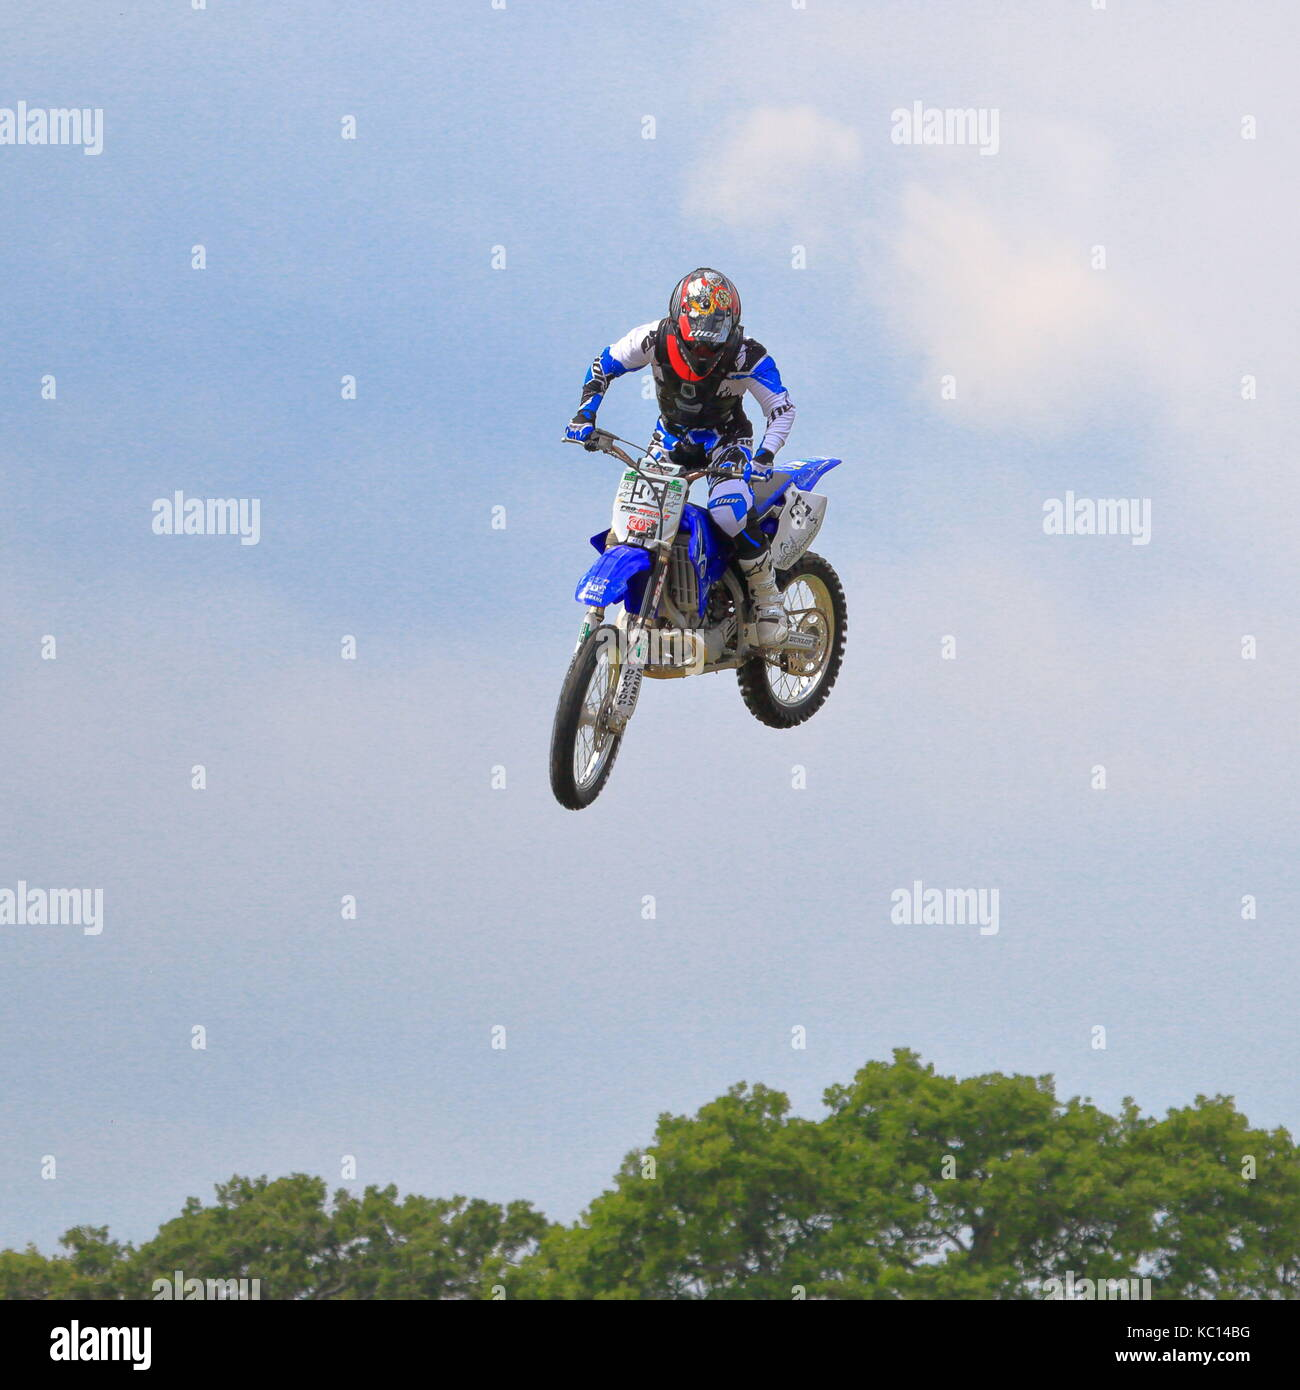 Freestyle Motocross Stock Photos Amp Freestyle Motocross Stock Images Alamy